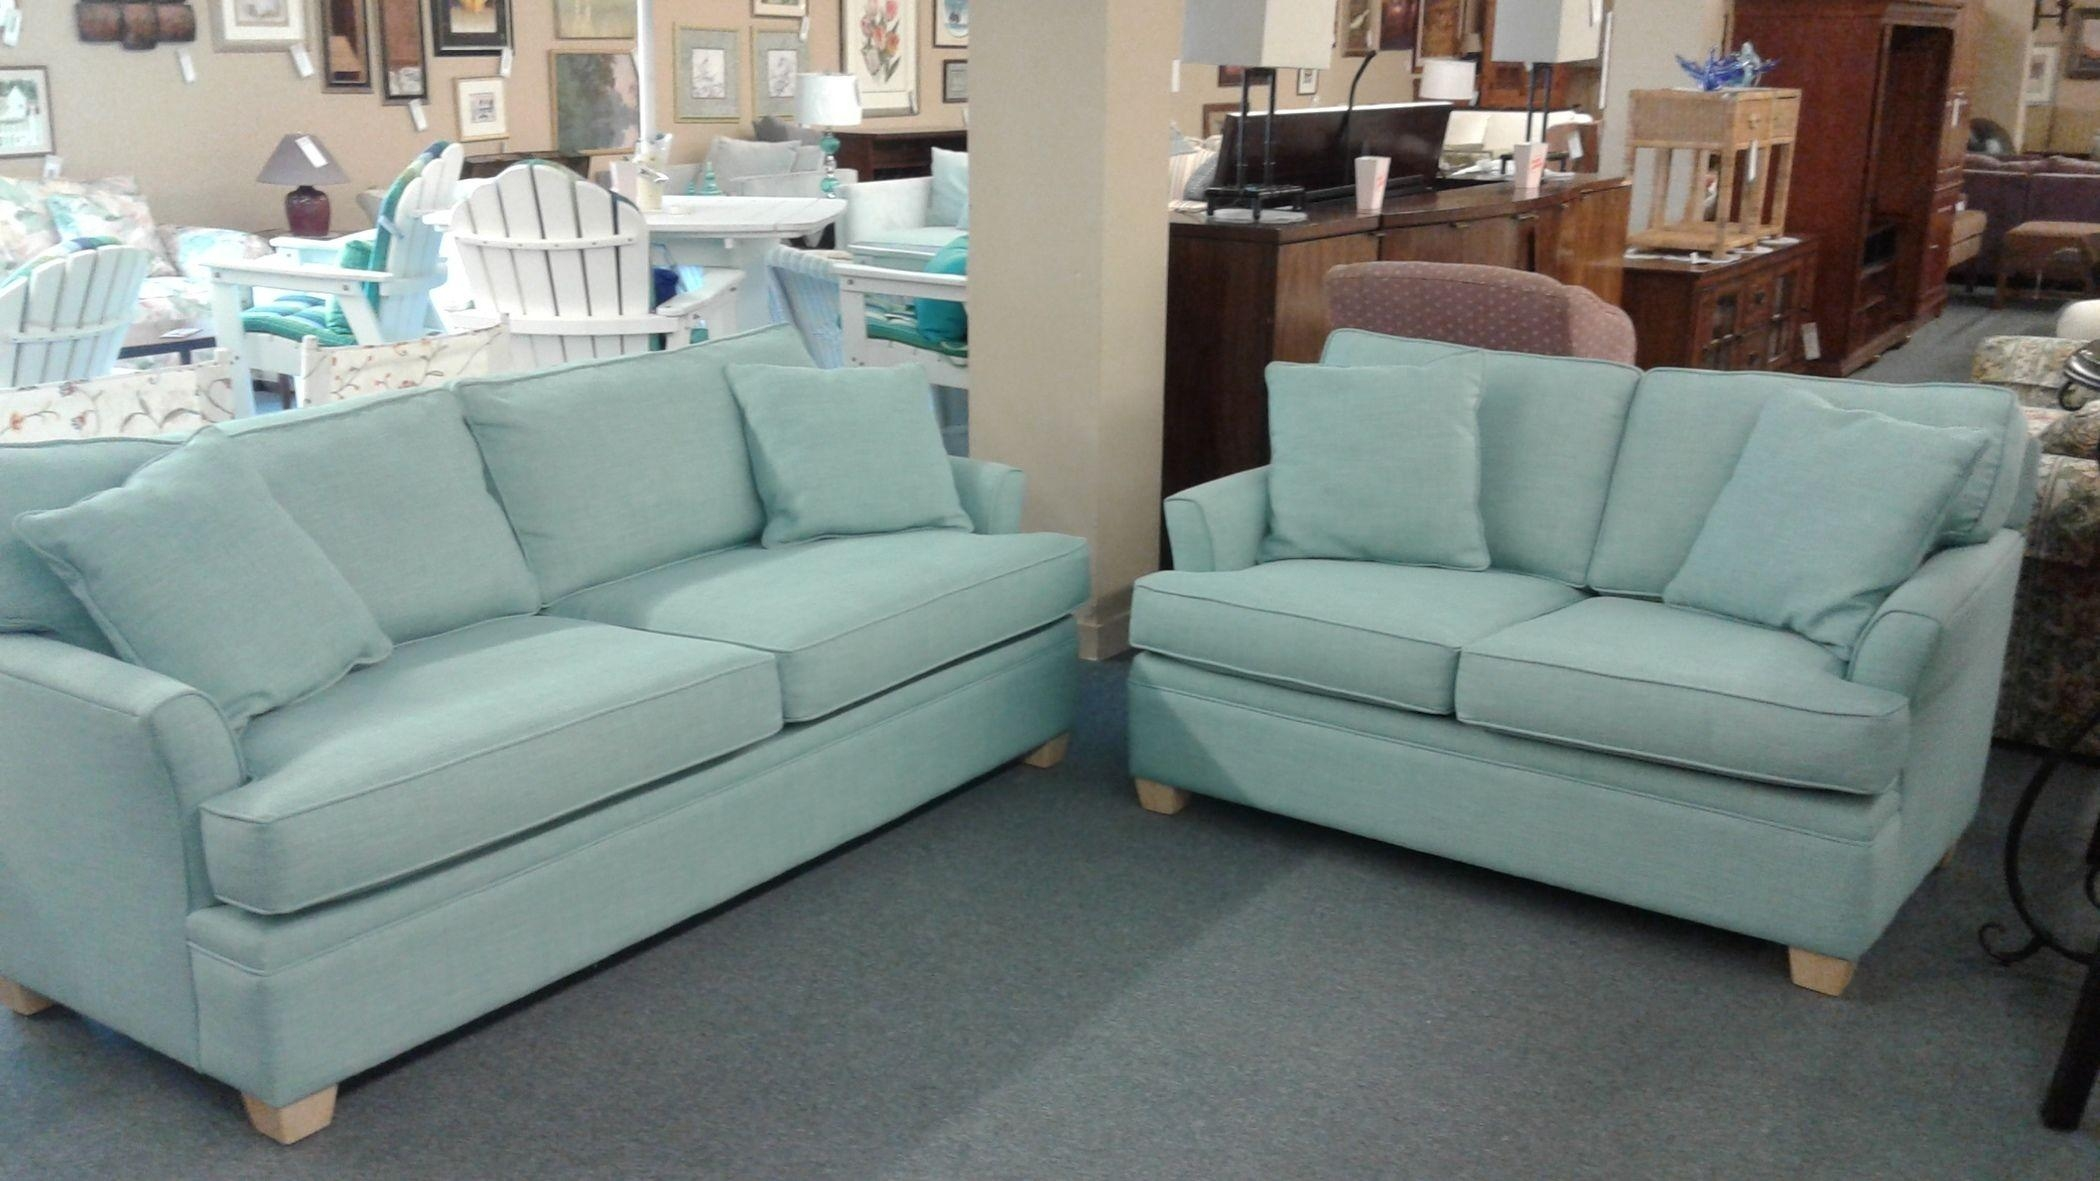 Braxton Culler Sofa & Loveseat | Delmarva Furniture Consignment In Braxton Culler Sofas (Image 11 of 20)